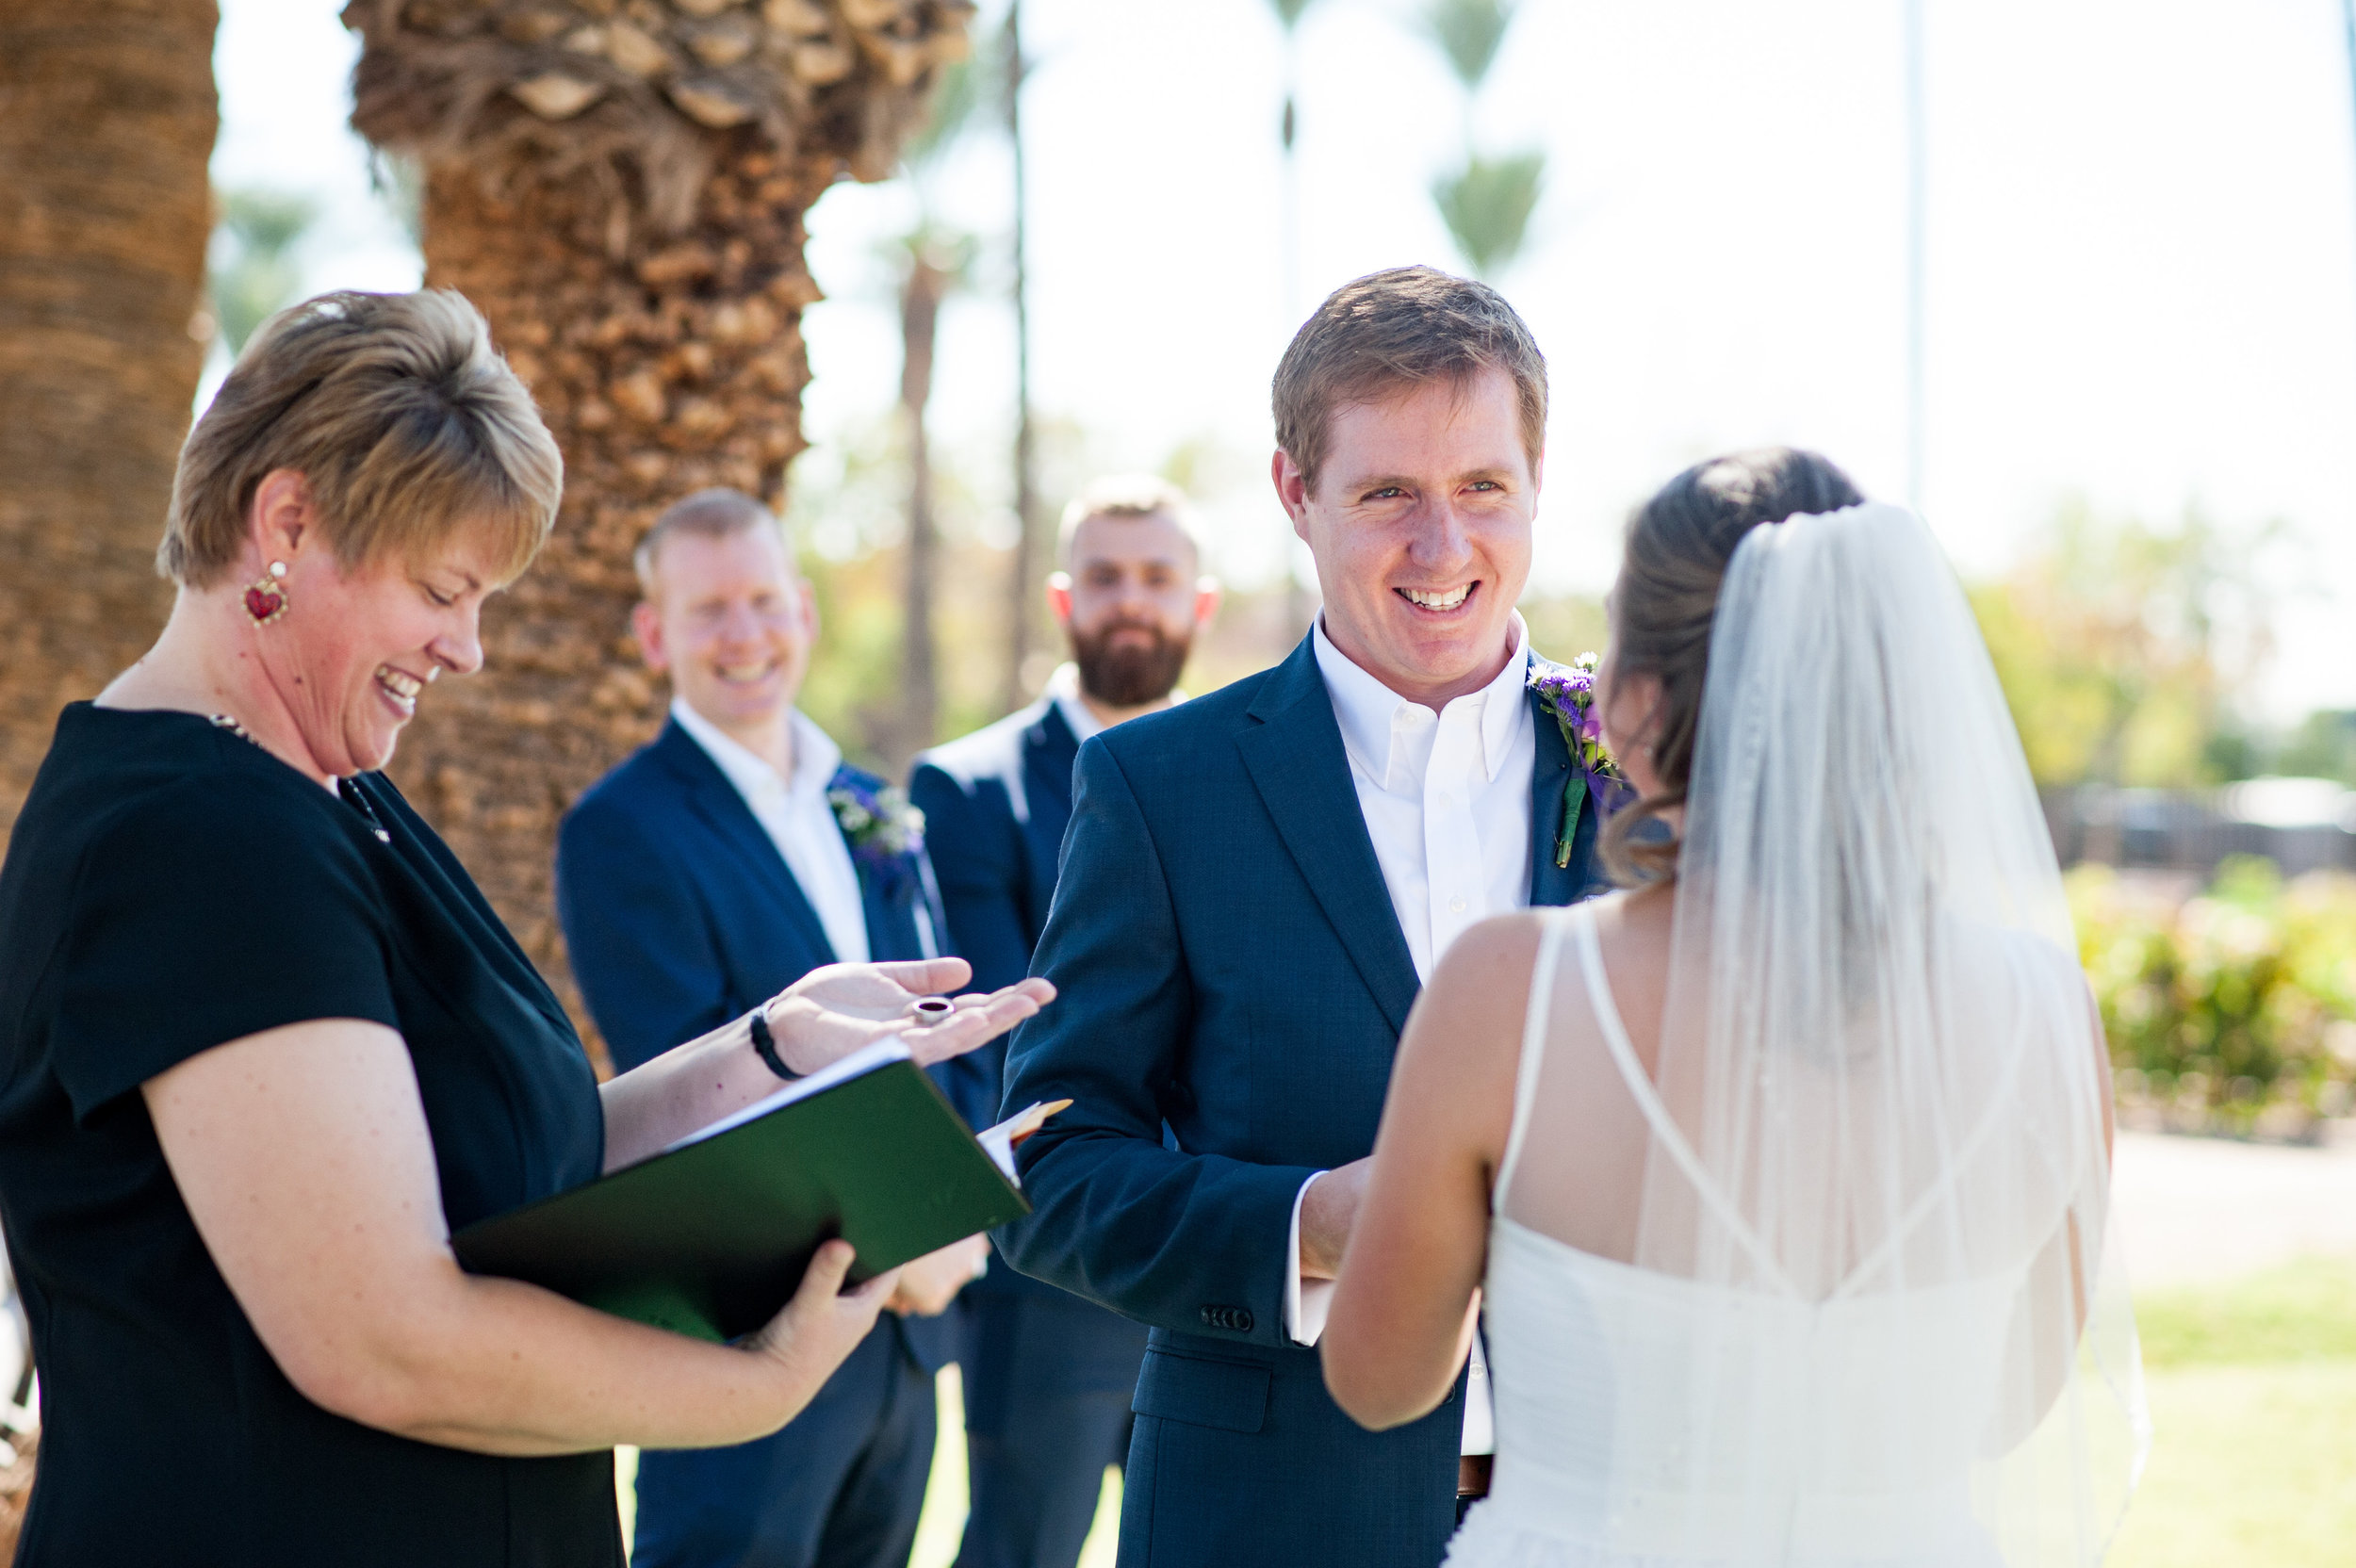 2017 Ben and Amy Wedding 2.jpg